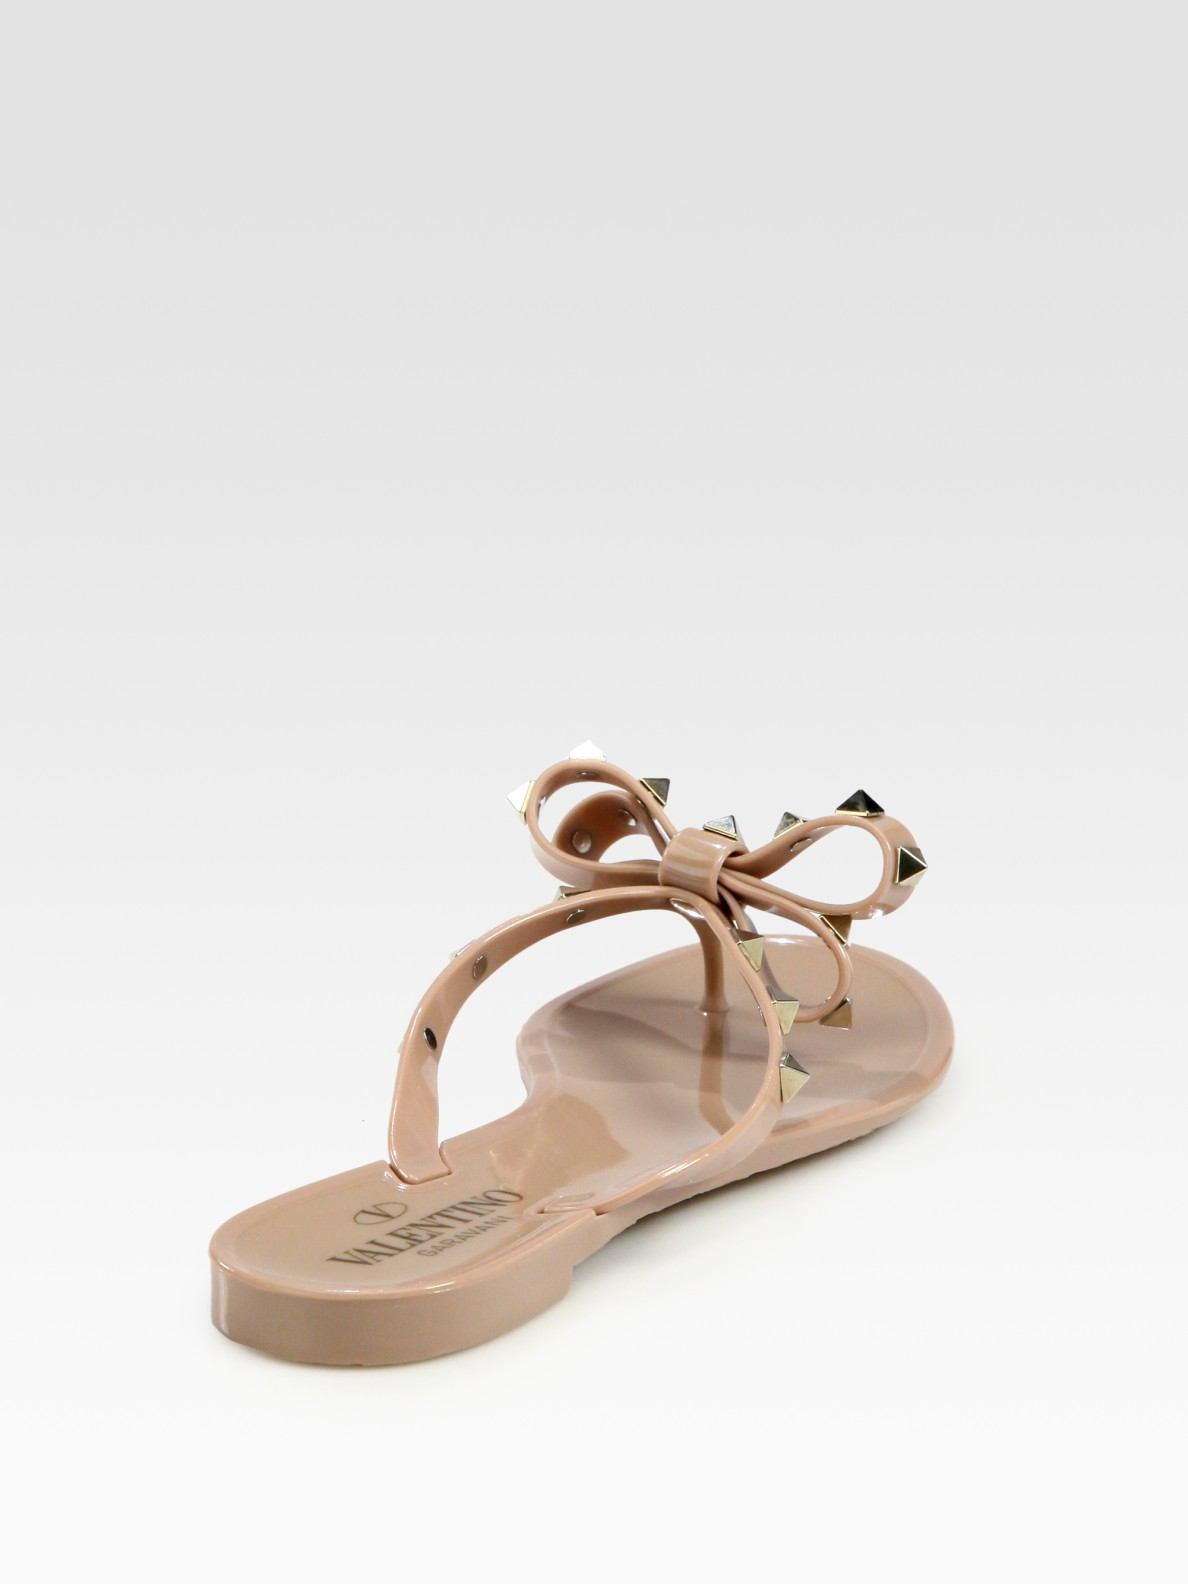 Valentino Rockstud Studded Thong Bow Jelly Flip Flops In -8452